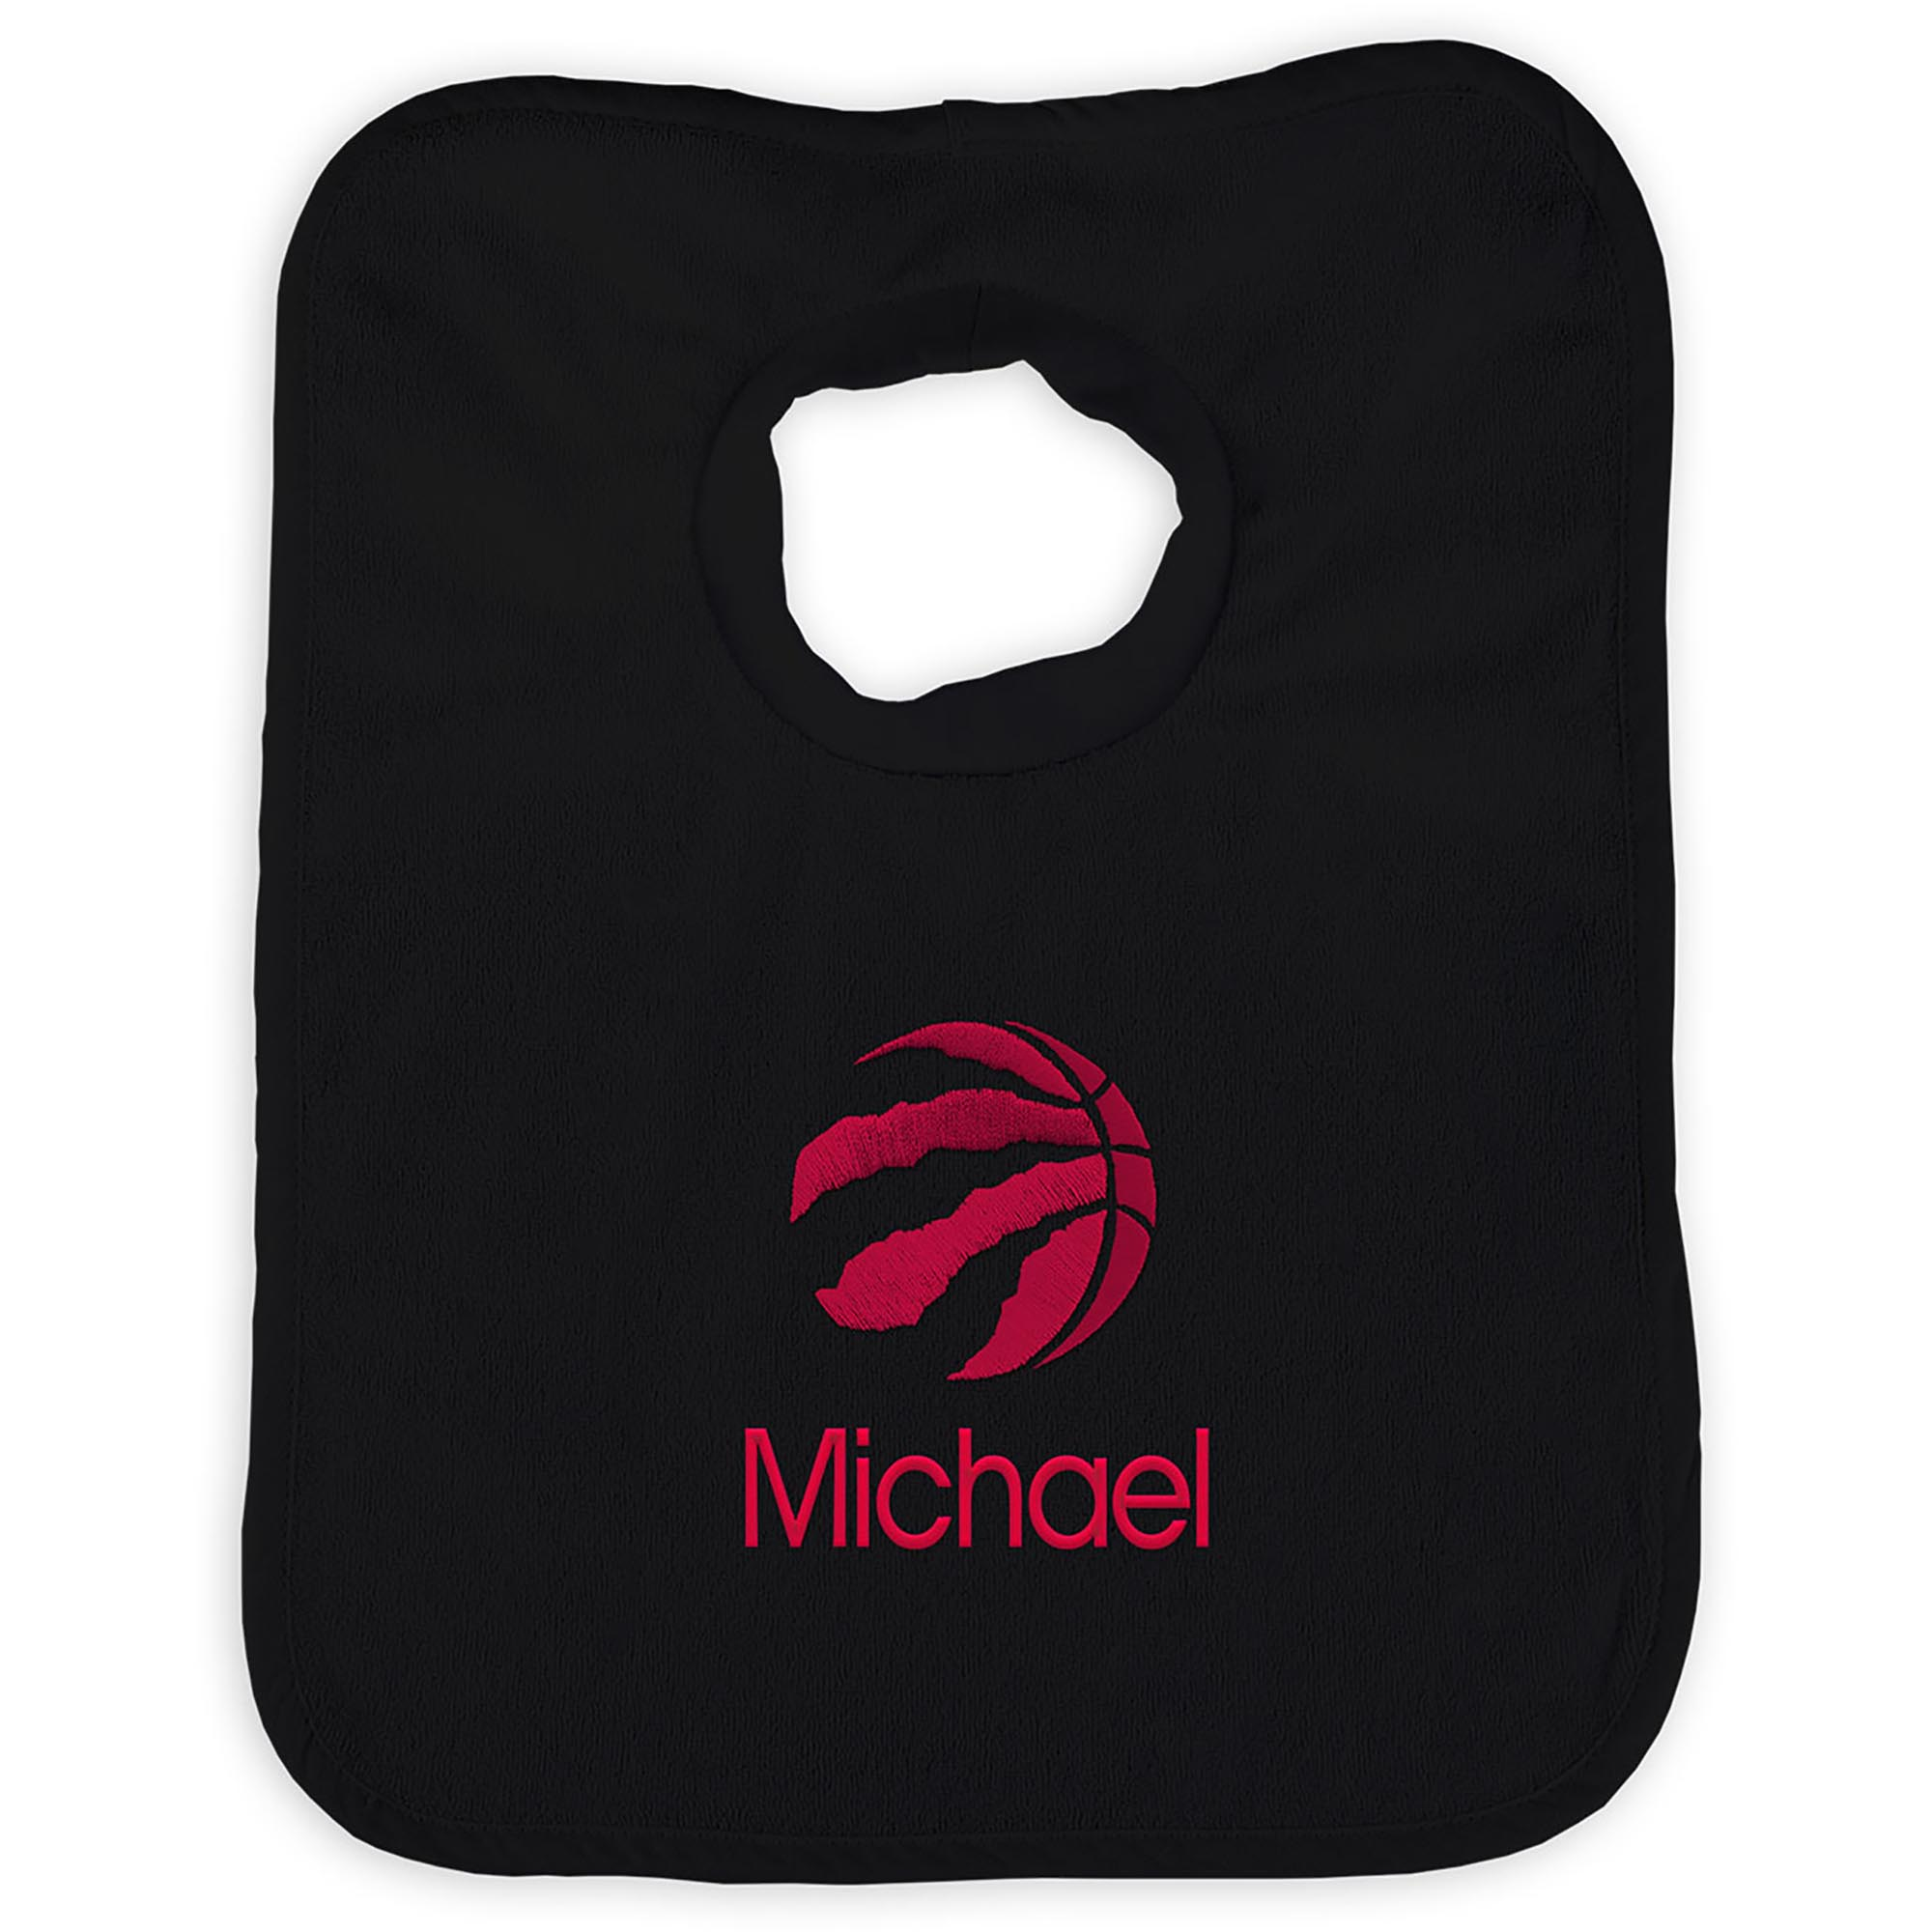 Toronto Raptors Infant Personalized Bib - Black